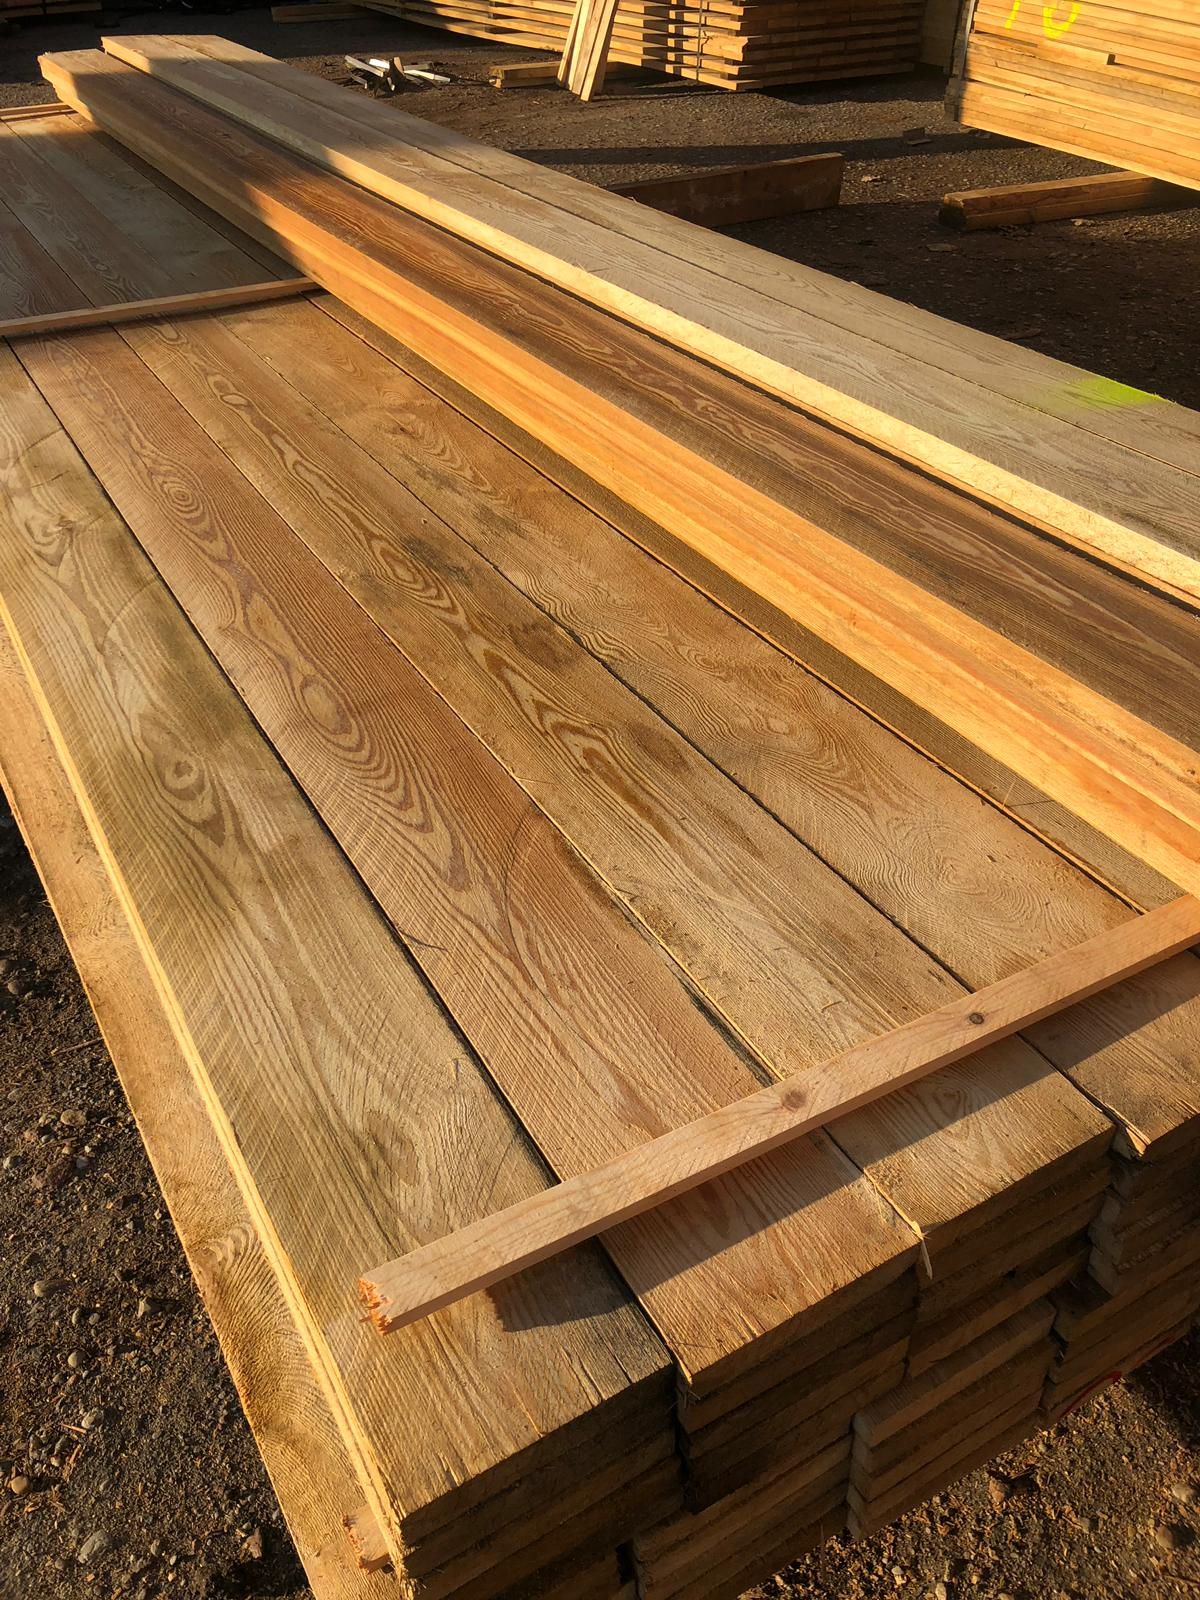 Siberian Larch Sawn Timber - Unsorted I-III - Nord Wood Timber